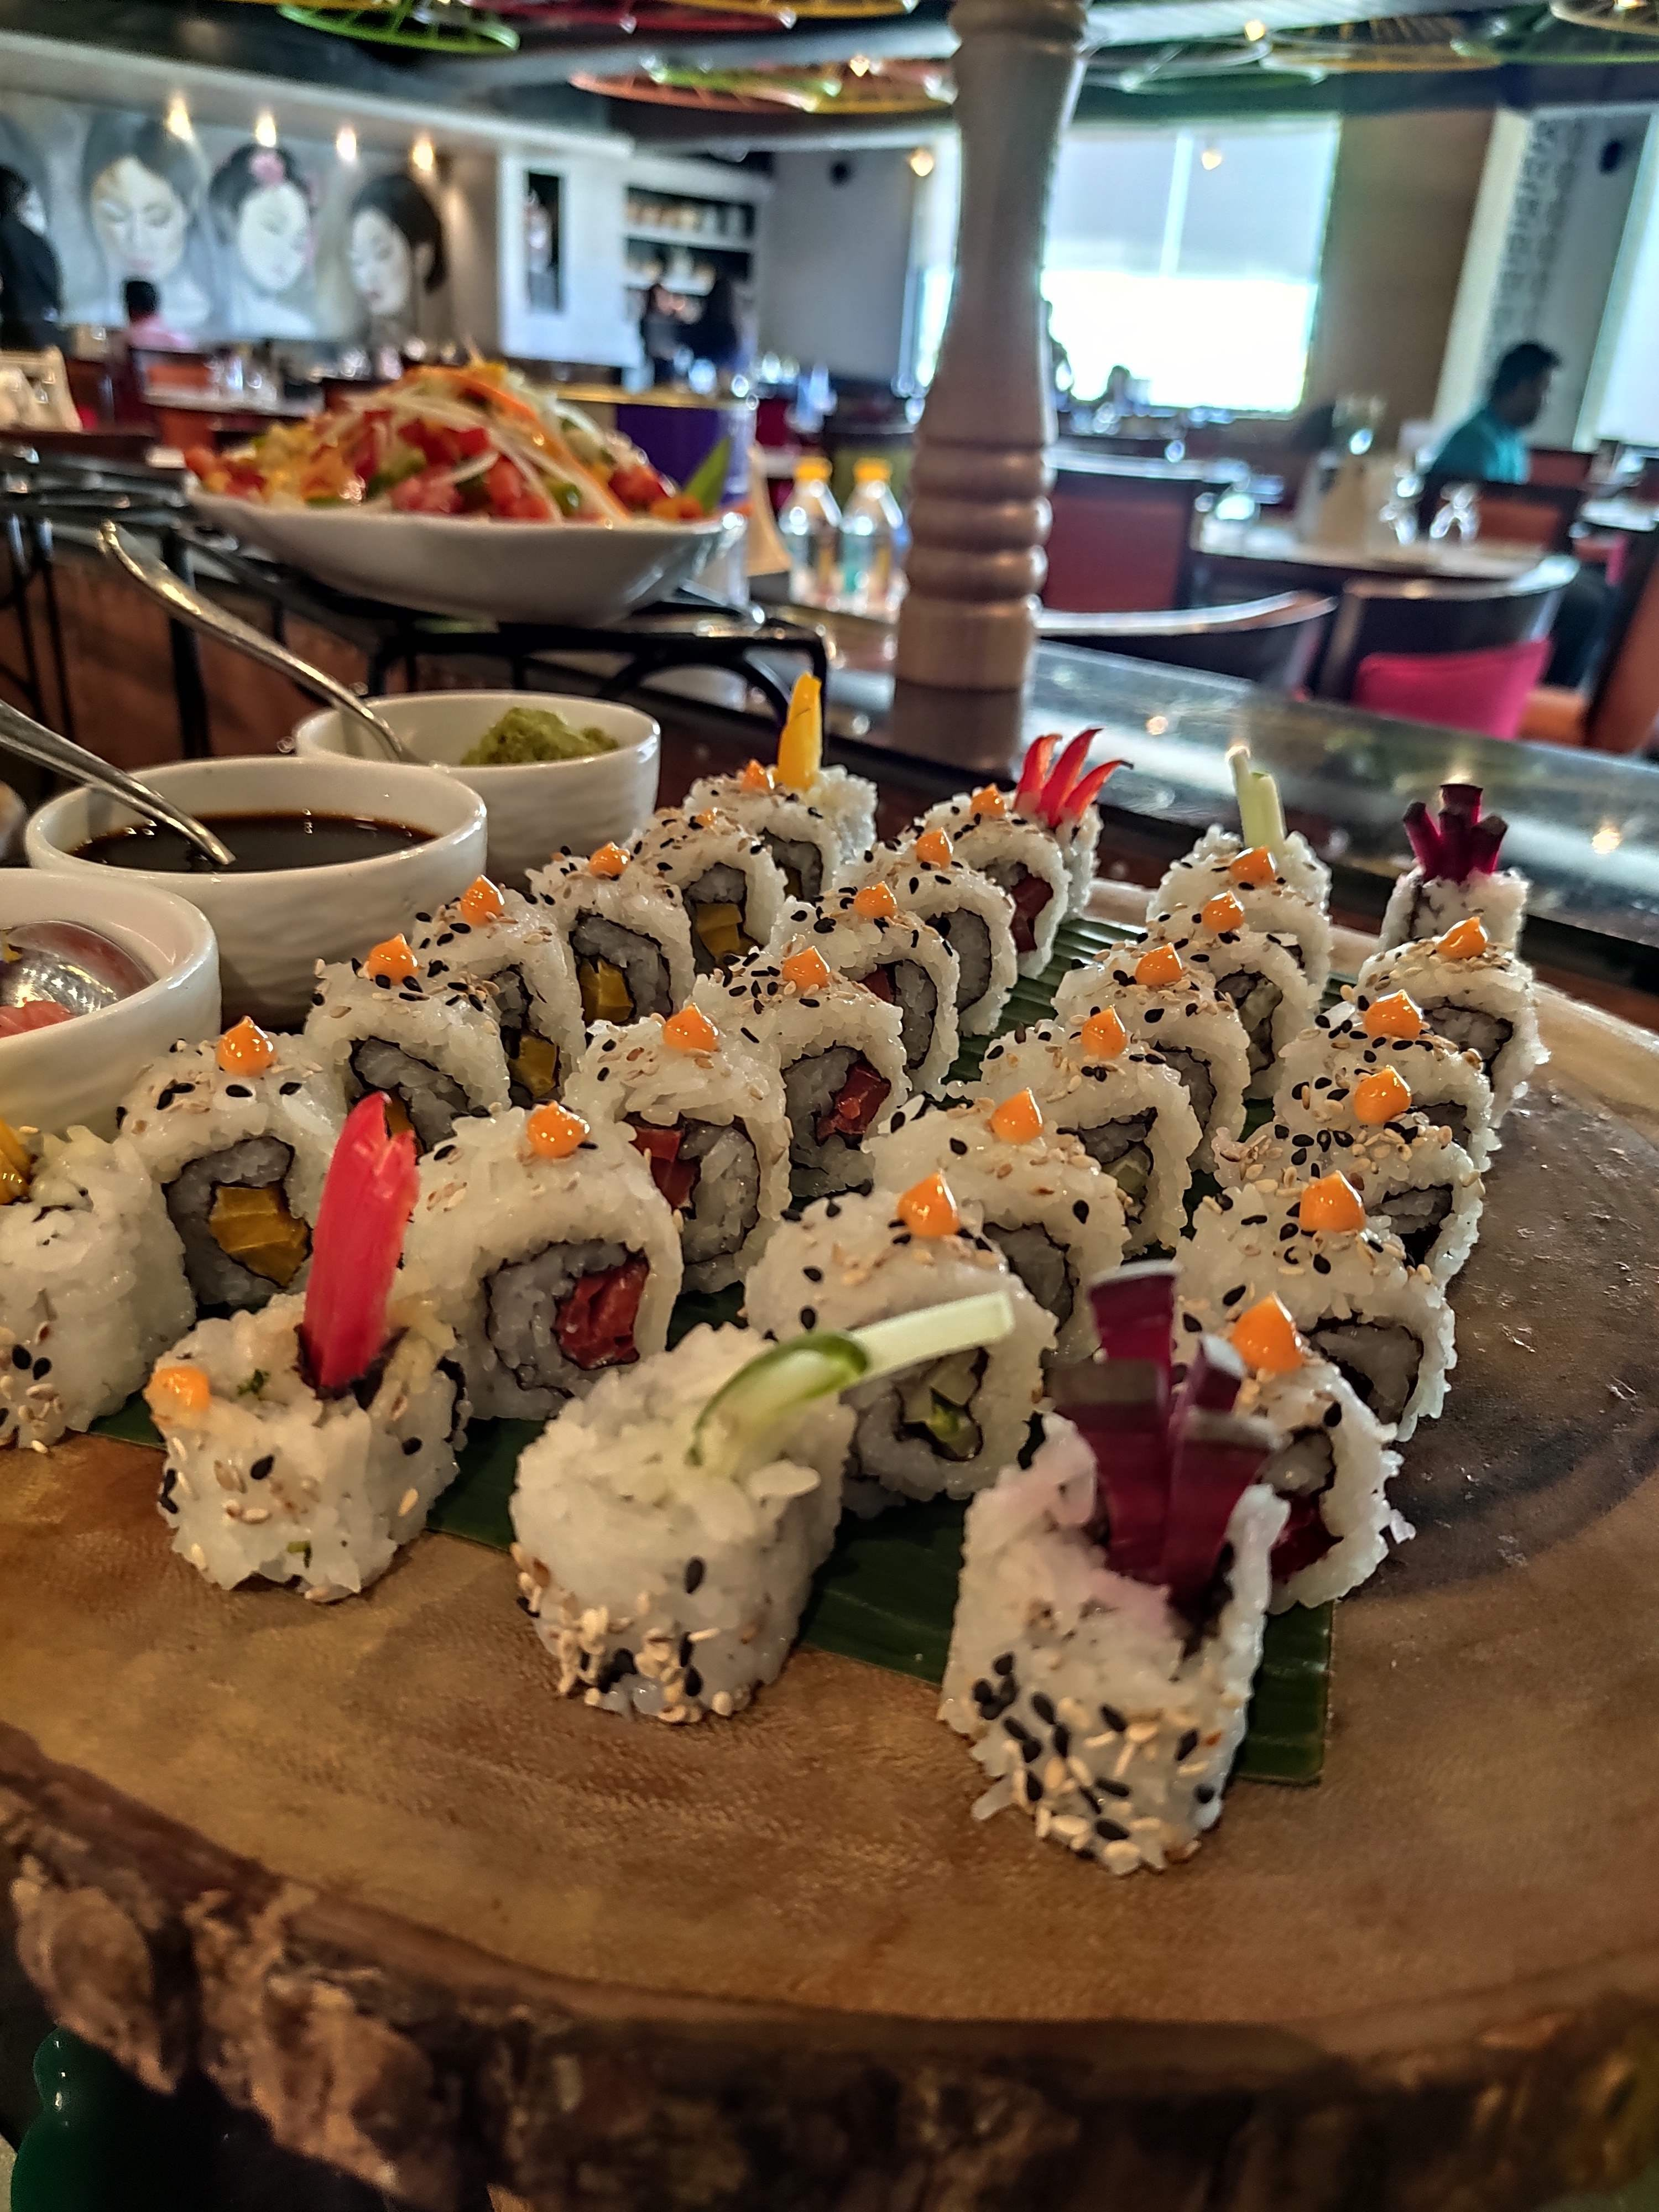 Cuisine,Food,Dish,California roll,Sushi,Comfort food,Delicacy,Finger food,Ingredient,Meal